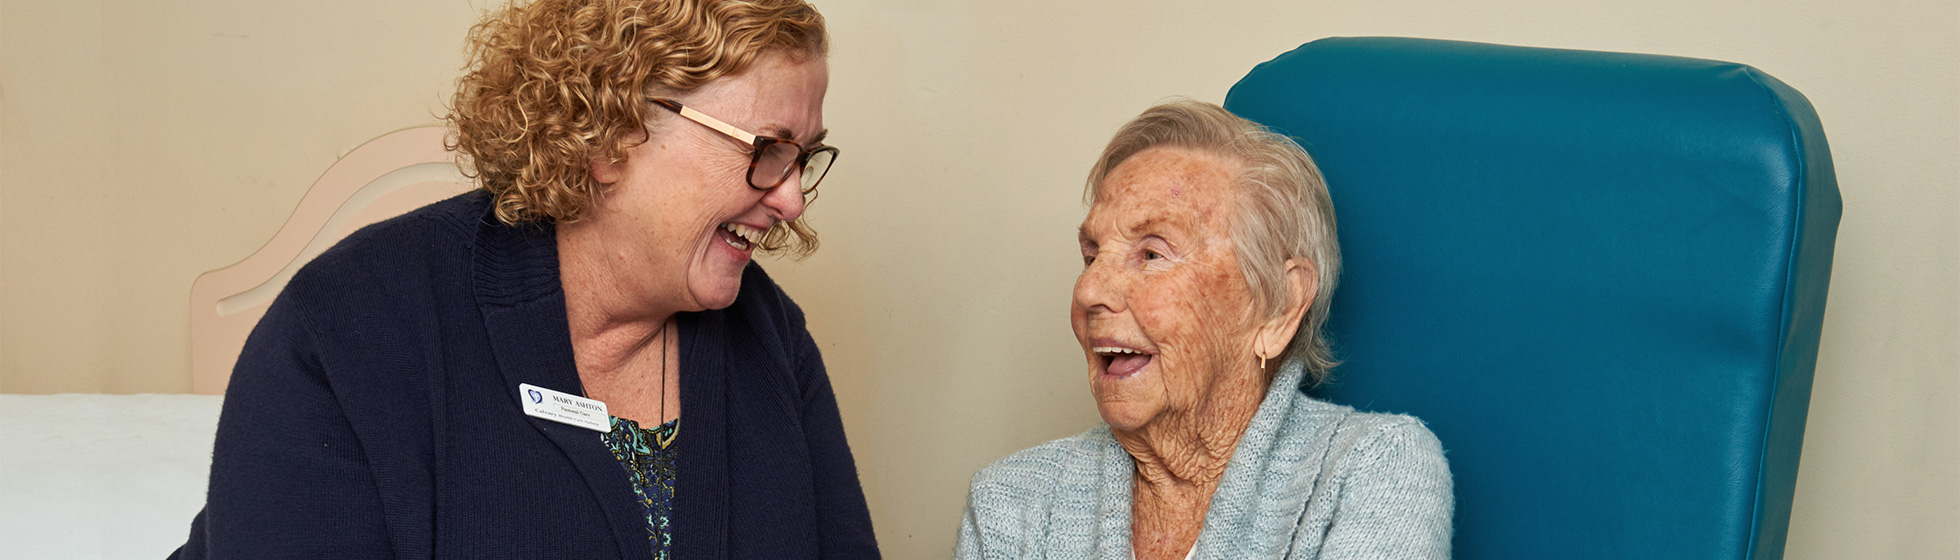 Pastoral care worker with palliative patient